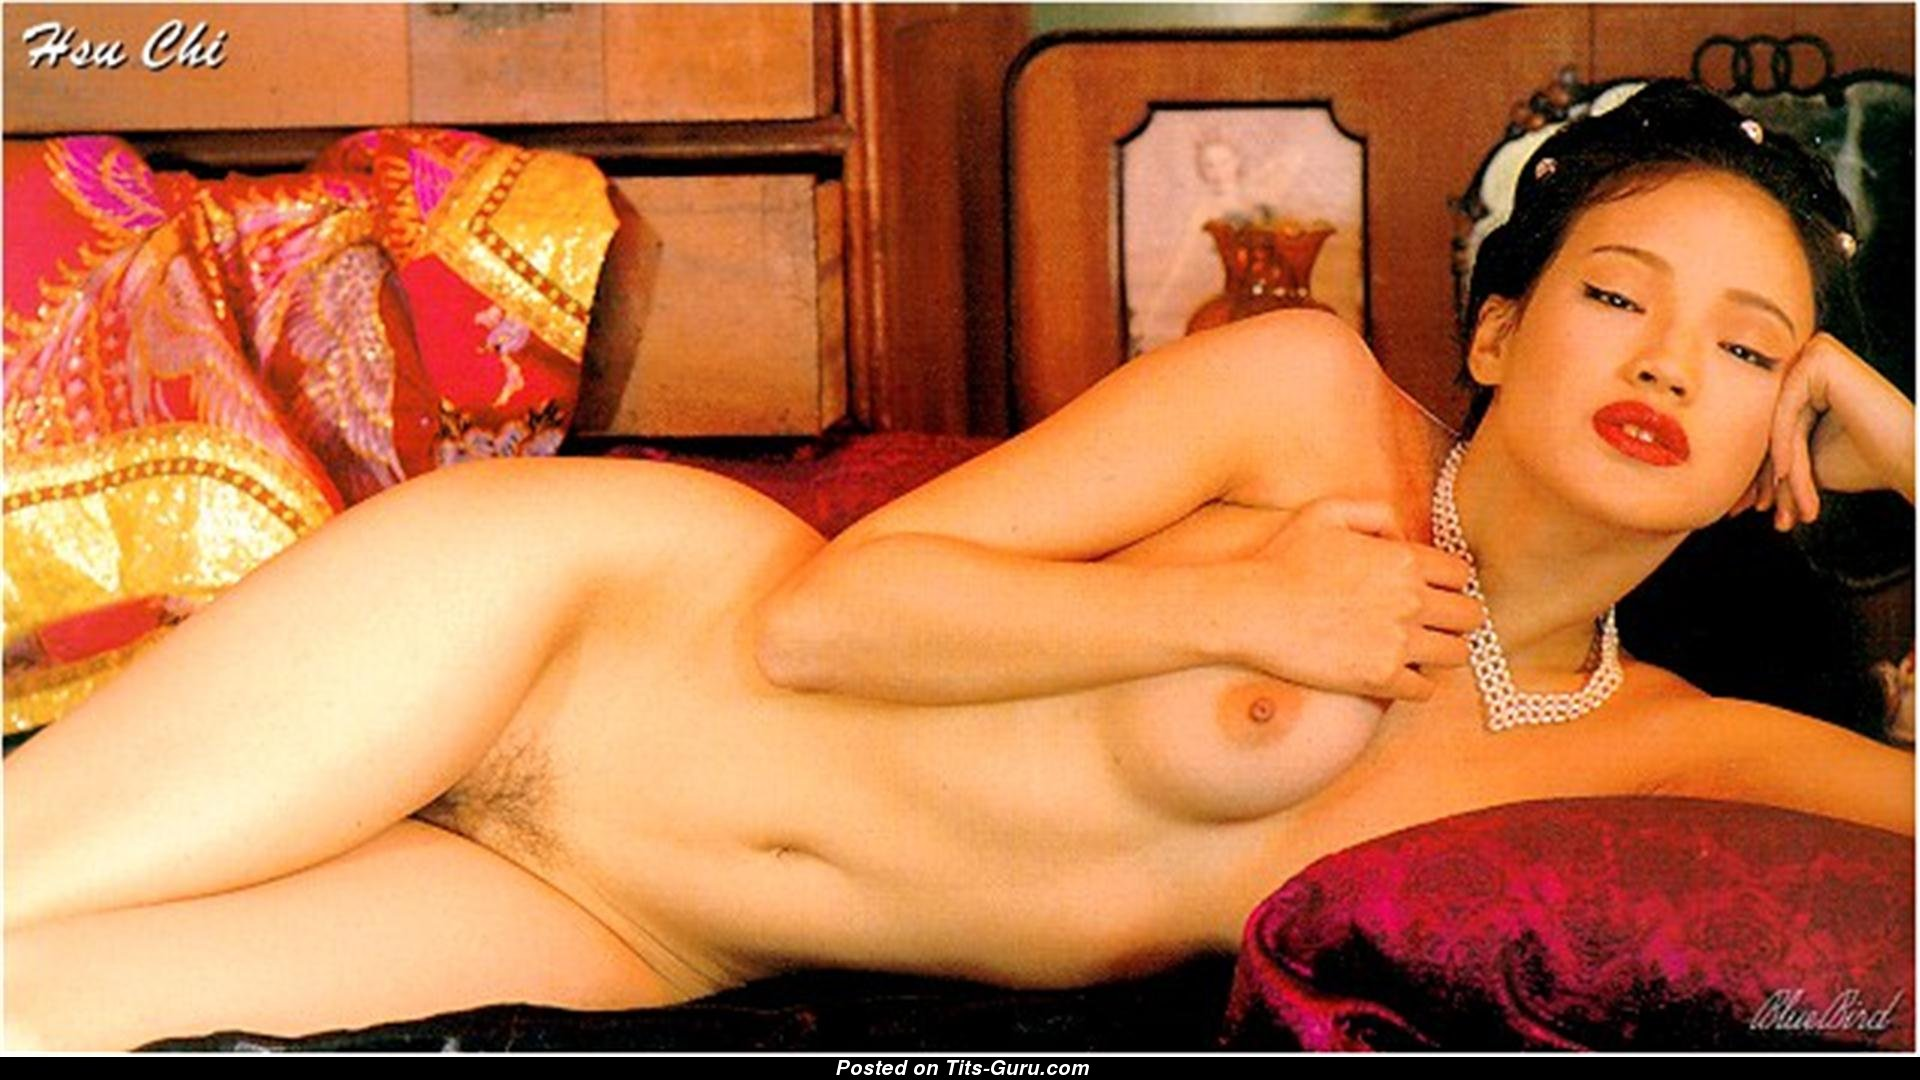 Shu Qi - Babe With Exposed Modest Busts Porn Pix 0807 -5990